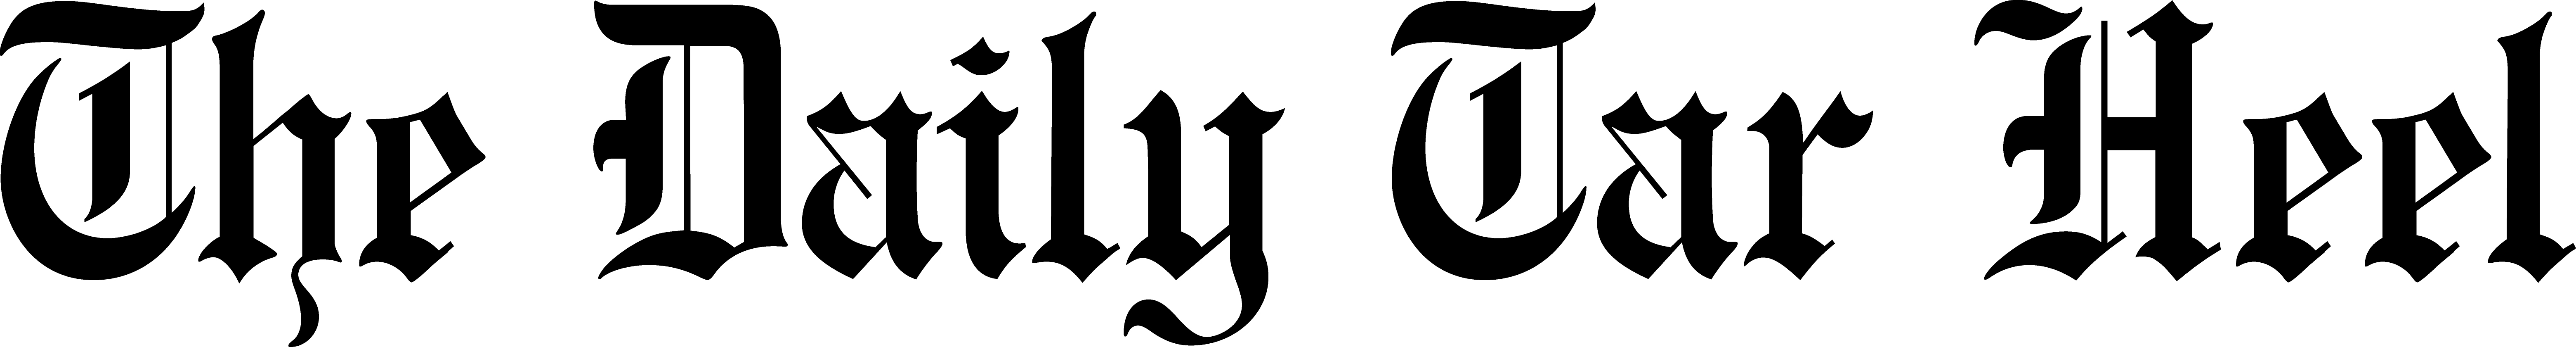 The Daily Tar Heel Masthead Logo